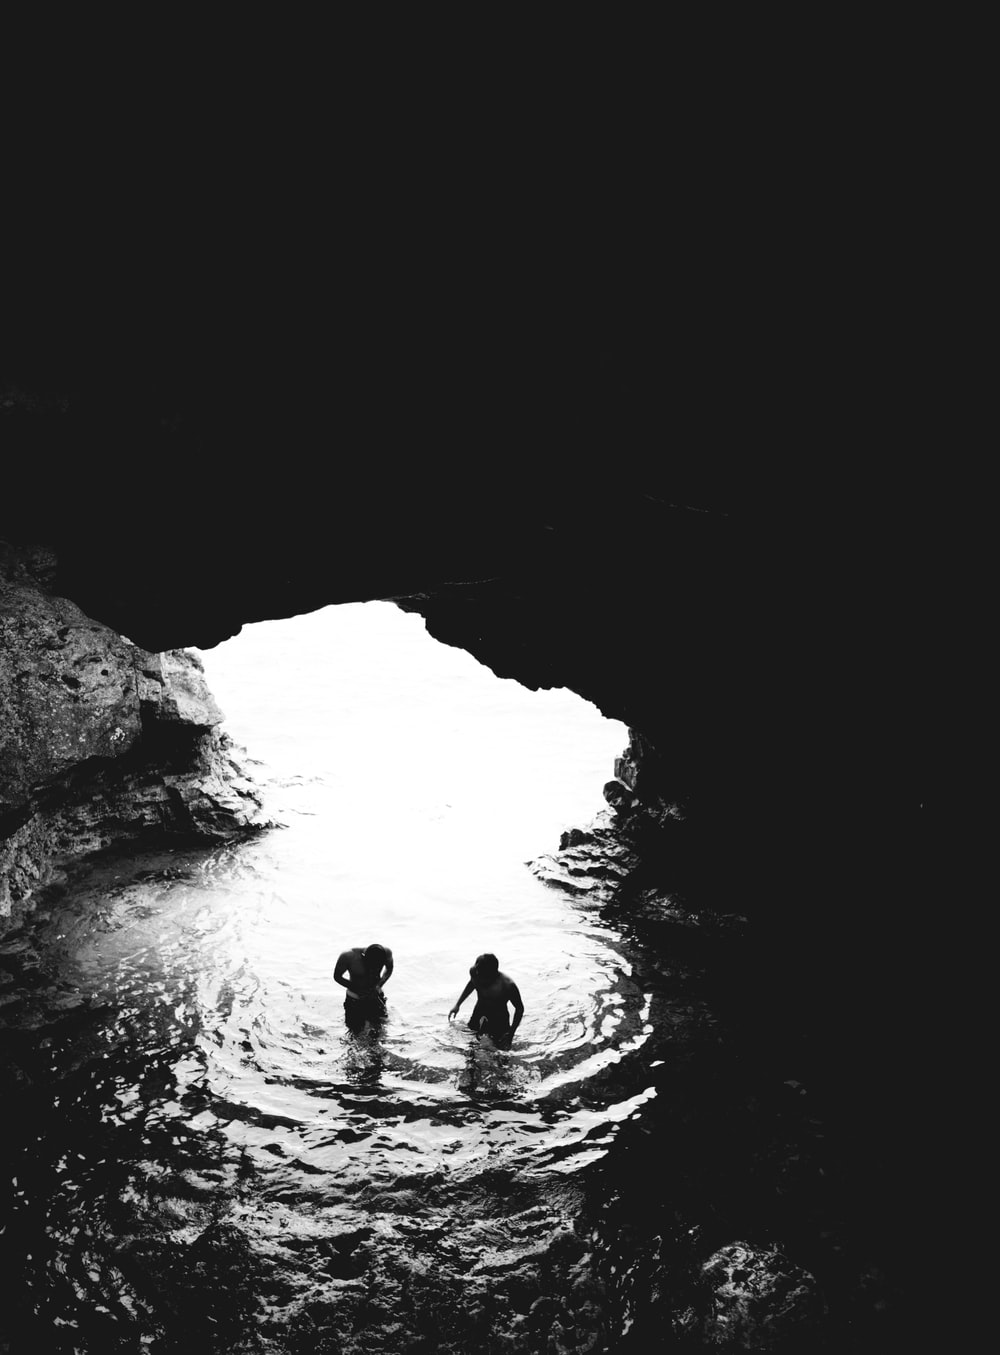 grayscale photo of two men in cave with body of water